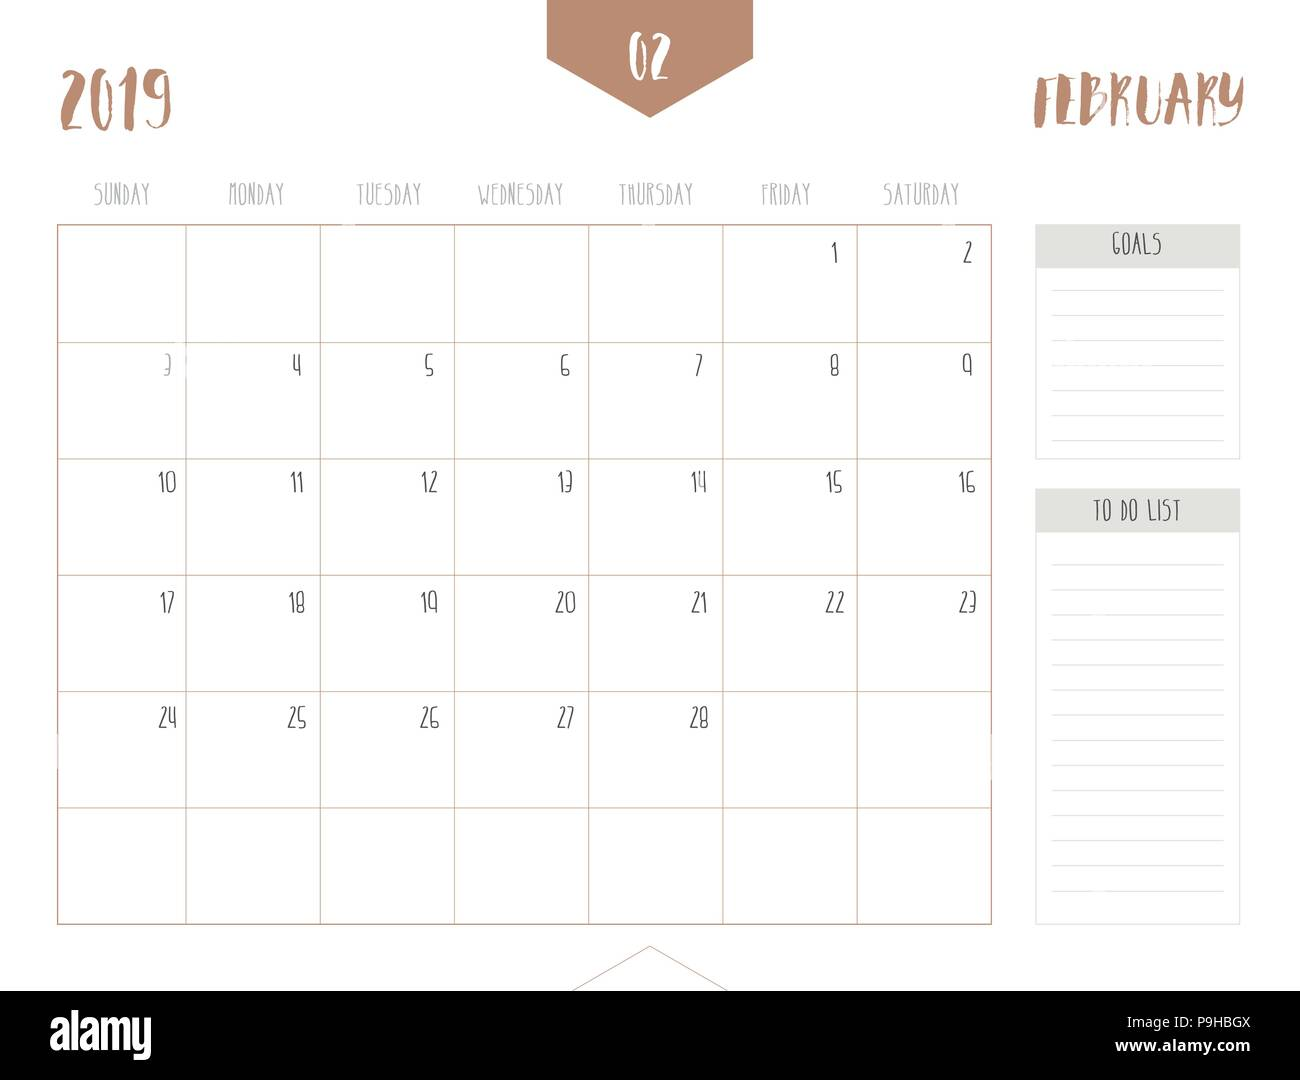 Calendrier Side Car Cross 2019.February Calendar 2019 Stock Photos February Calendar 2019